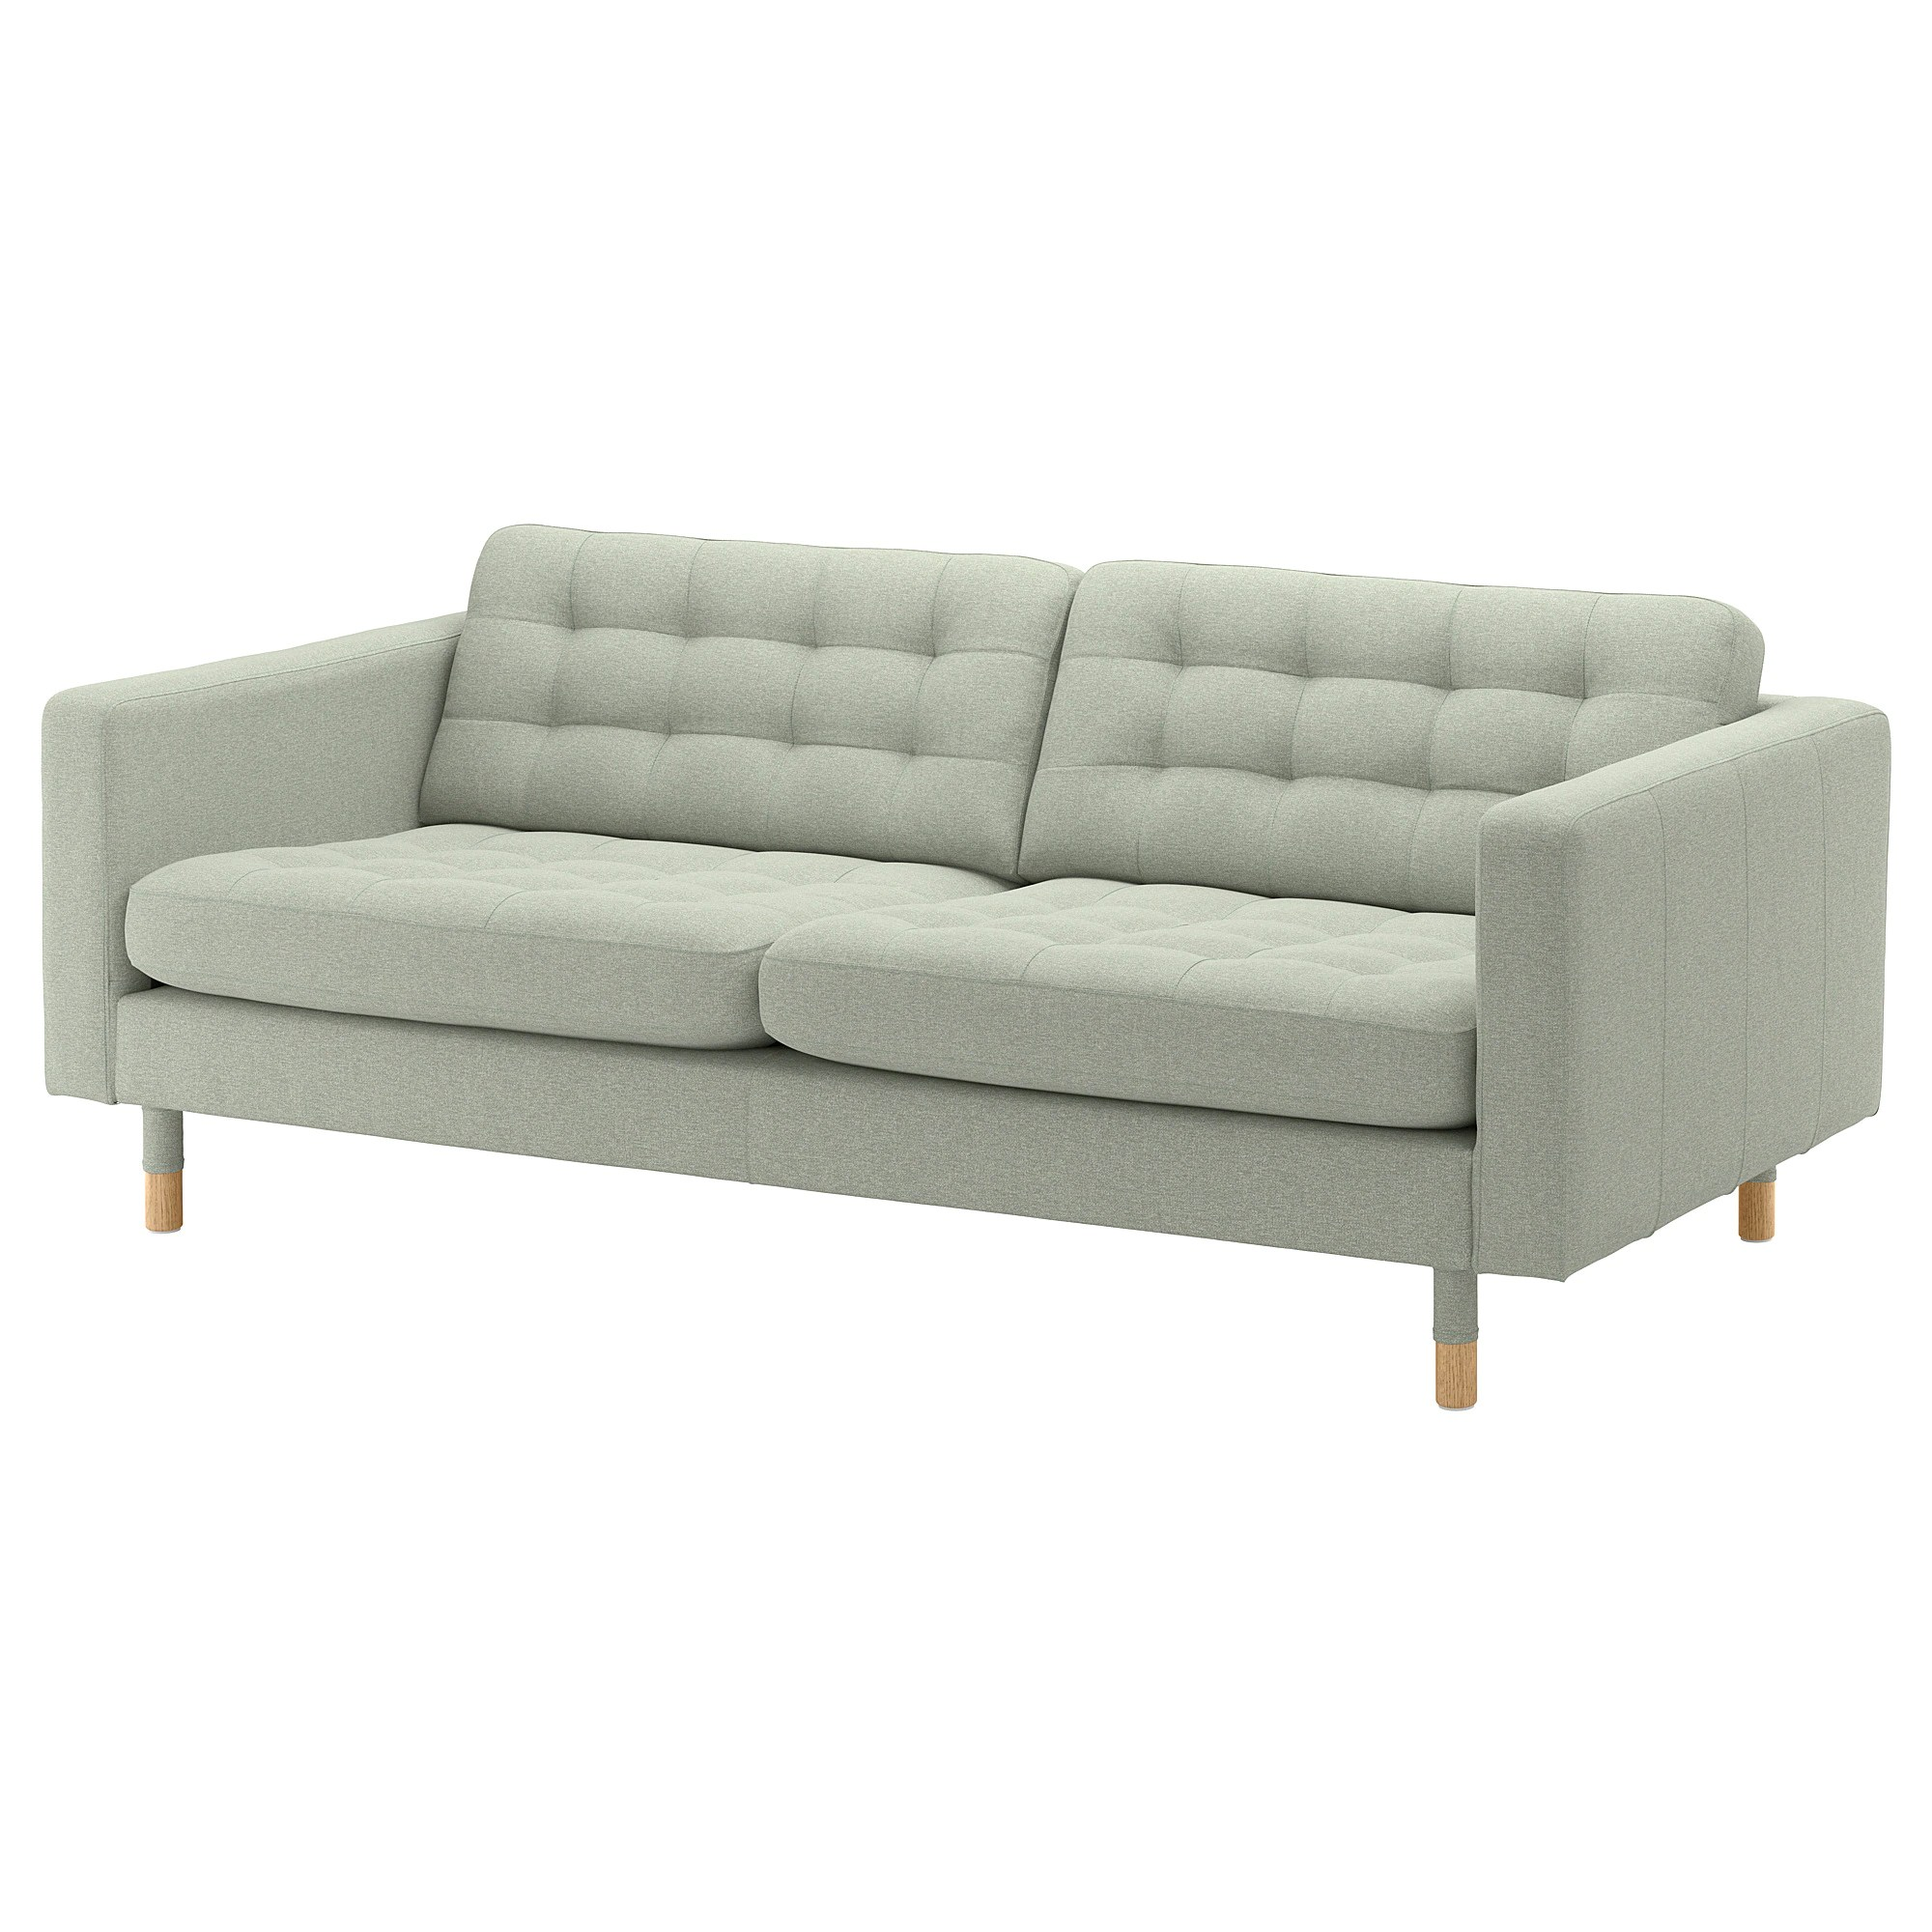 Couches In Ikea Sofa Landskrona Gunnared Light Green Wood